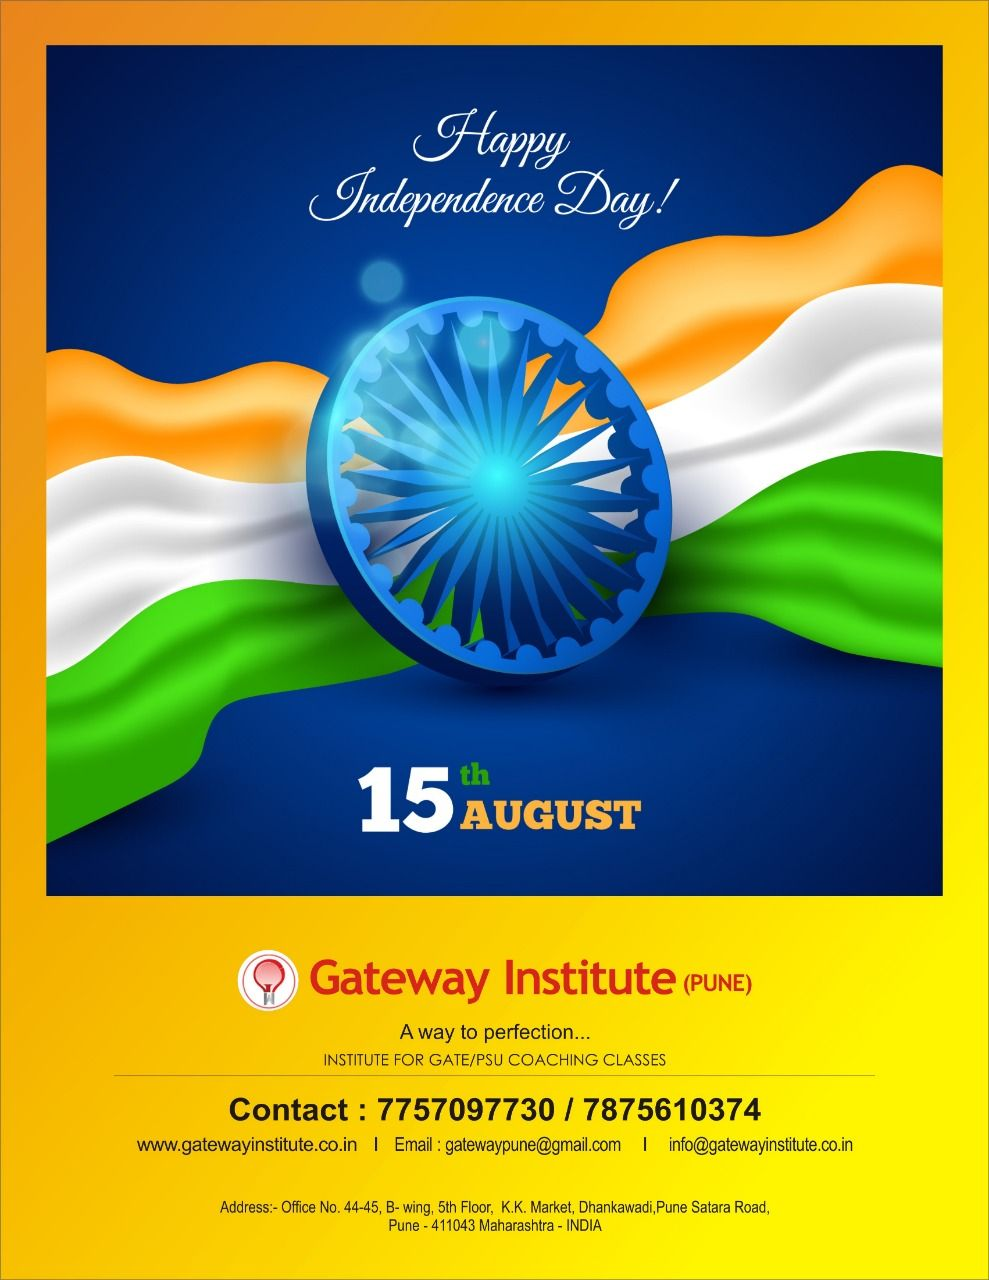 Happy Independence Day from Gateway Institute Pune